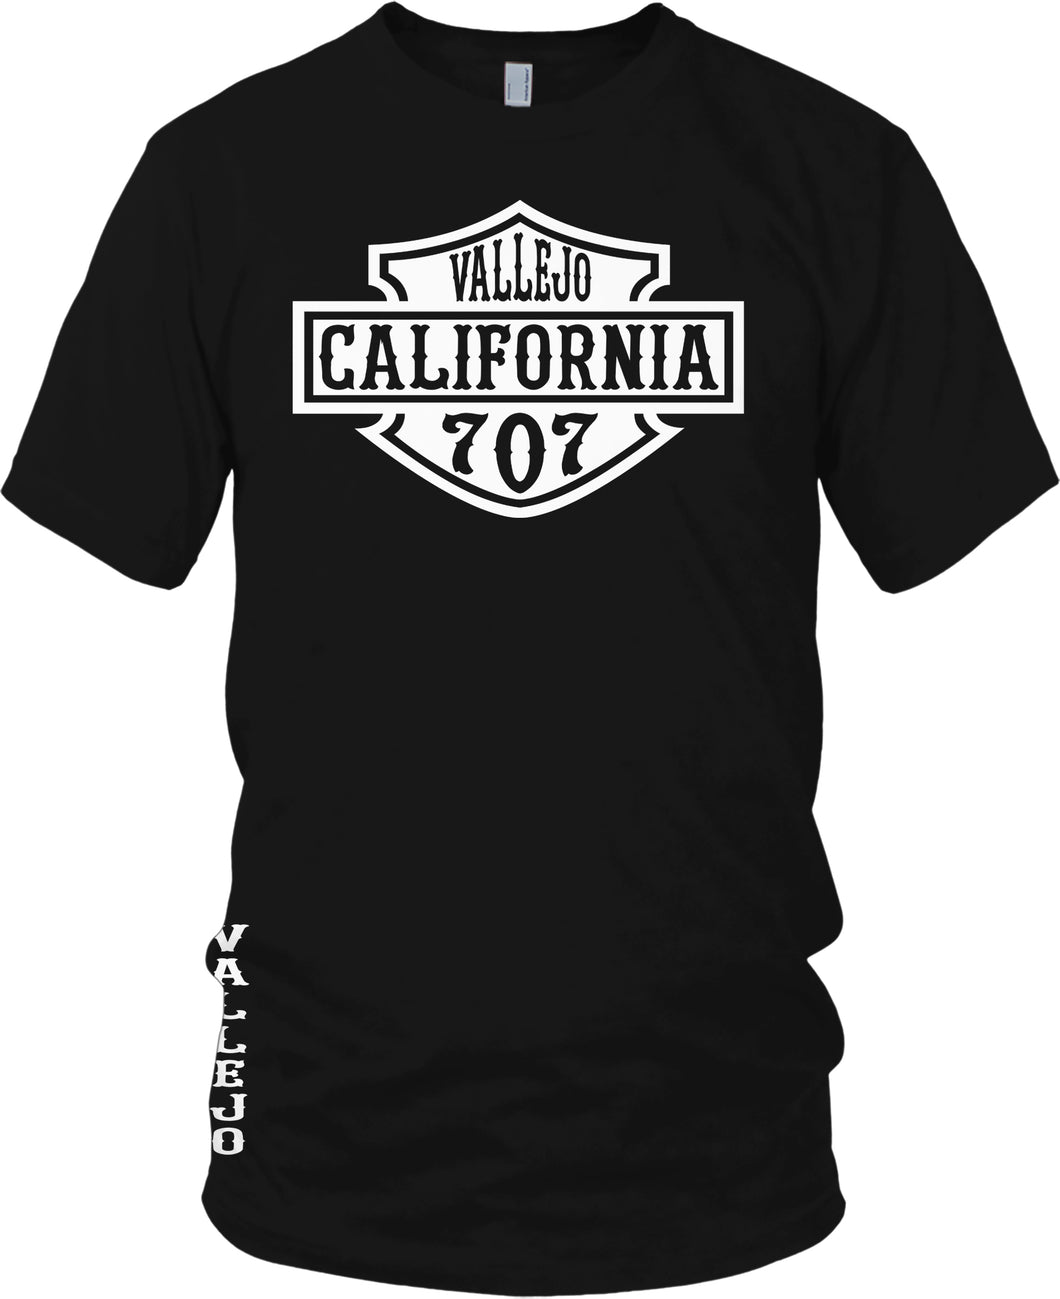 VALLEJO CALIFORNIA 707 HD BLACK T-SHIRT (LIMITED EDITION)